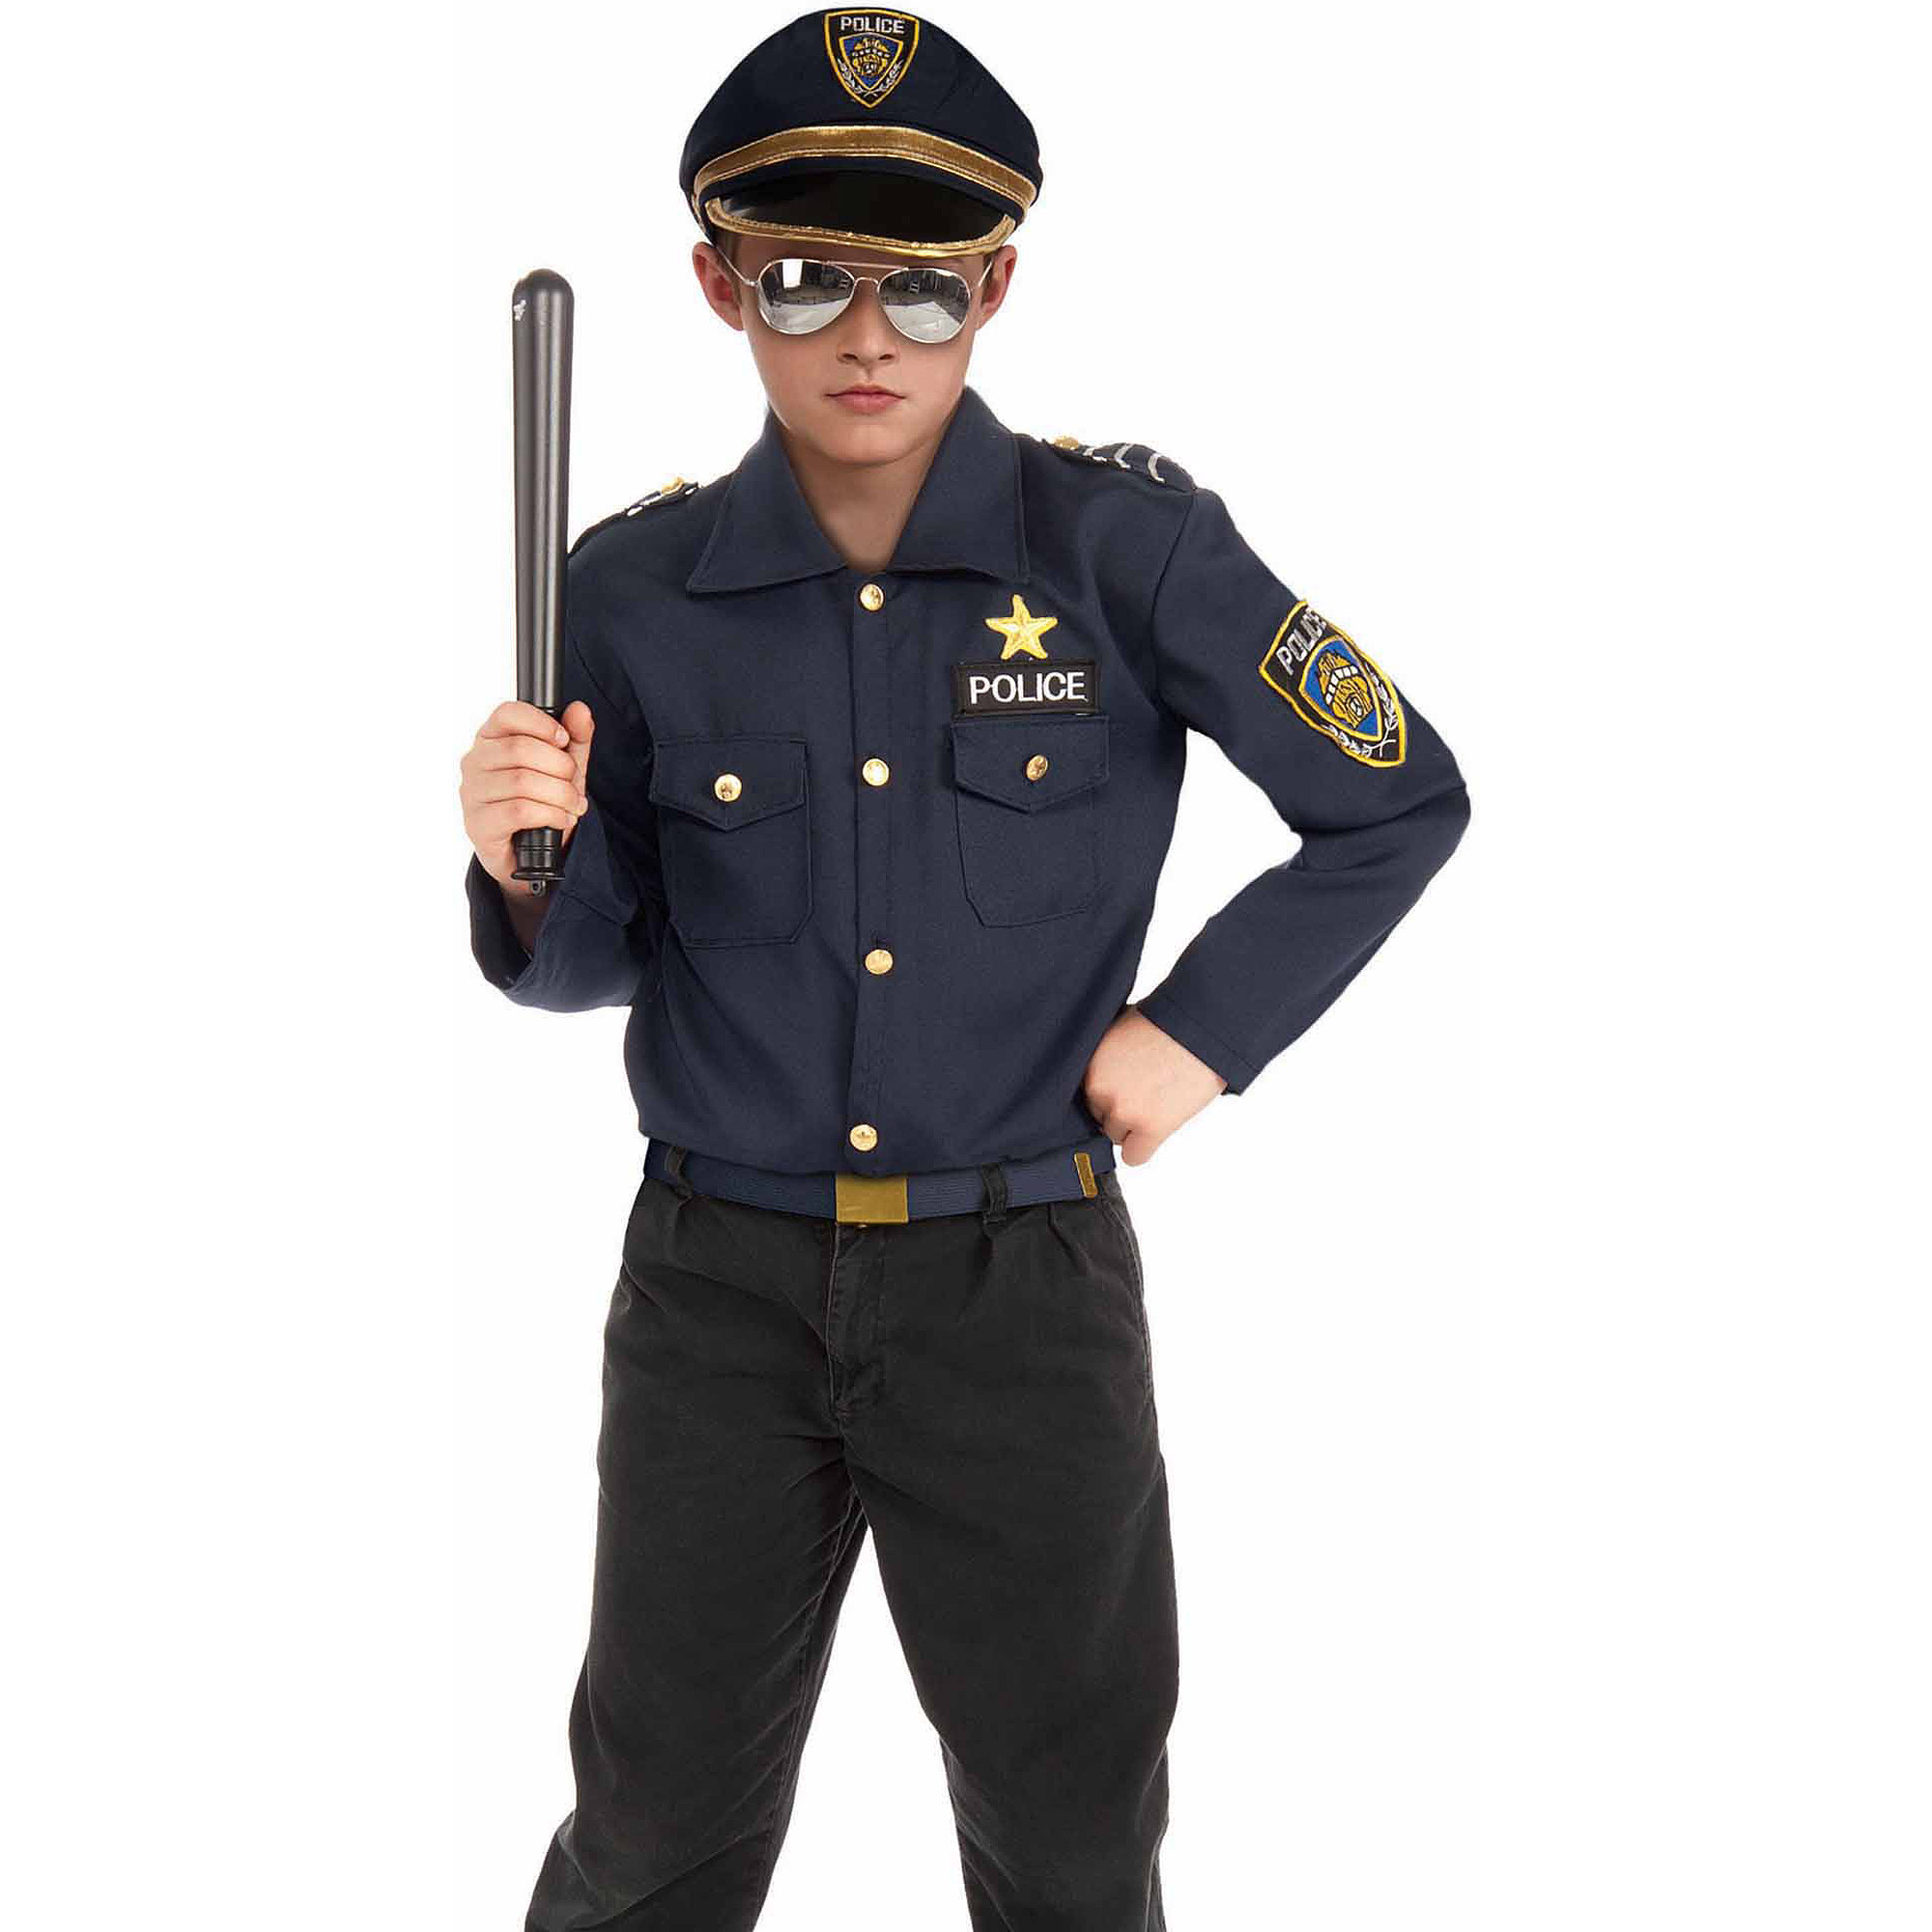 Police Kit Boy Halloween Costume